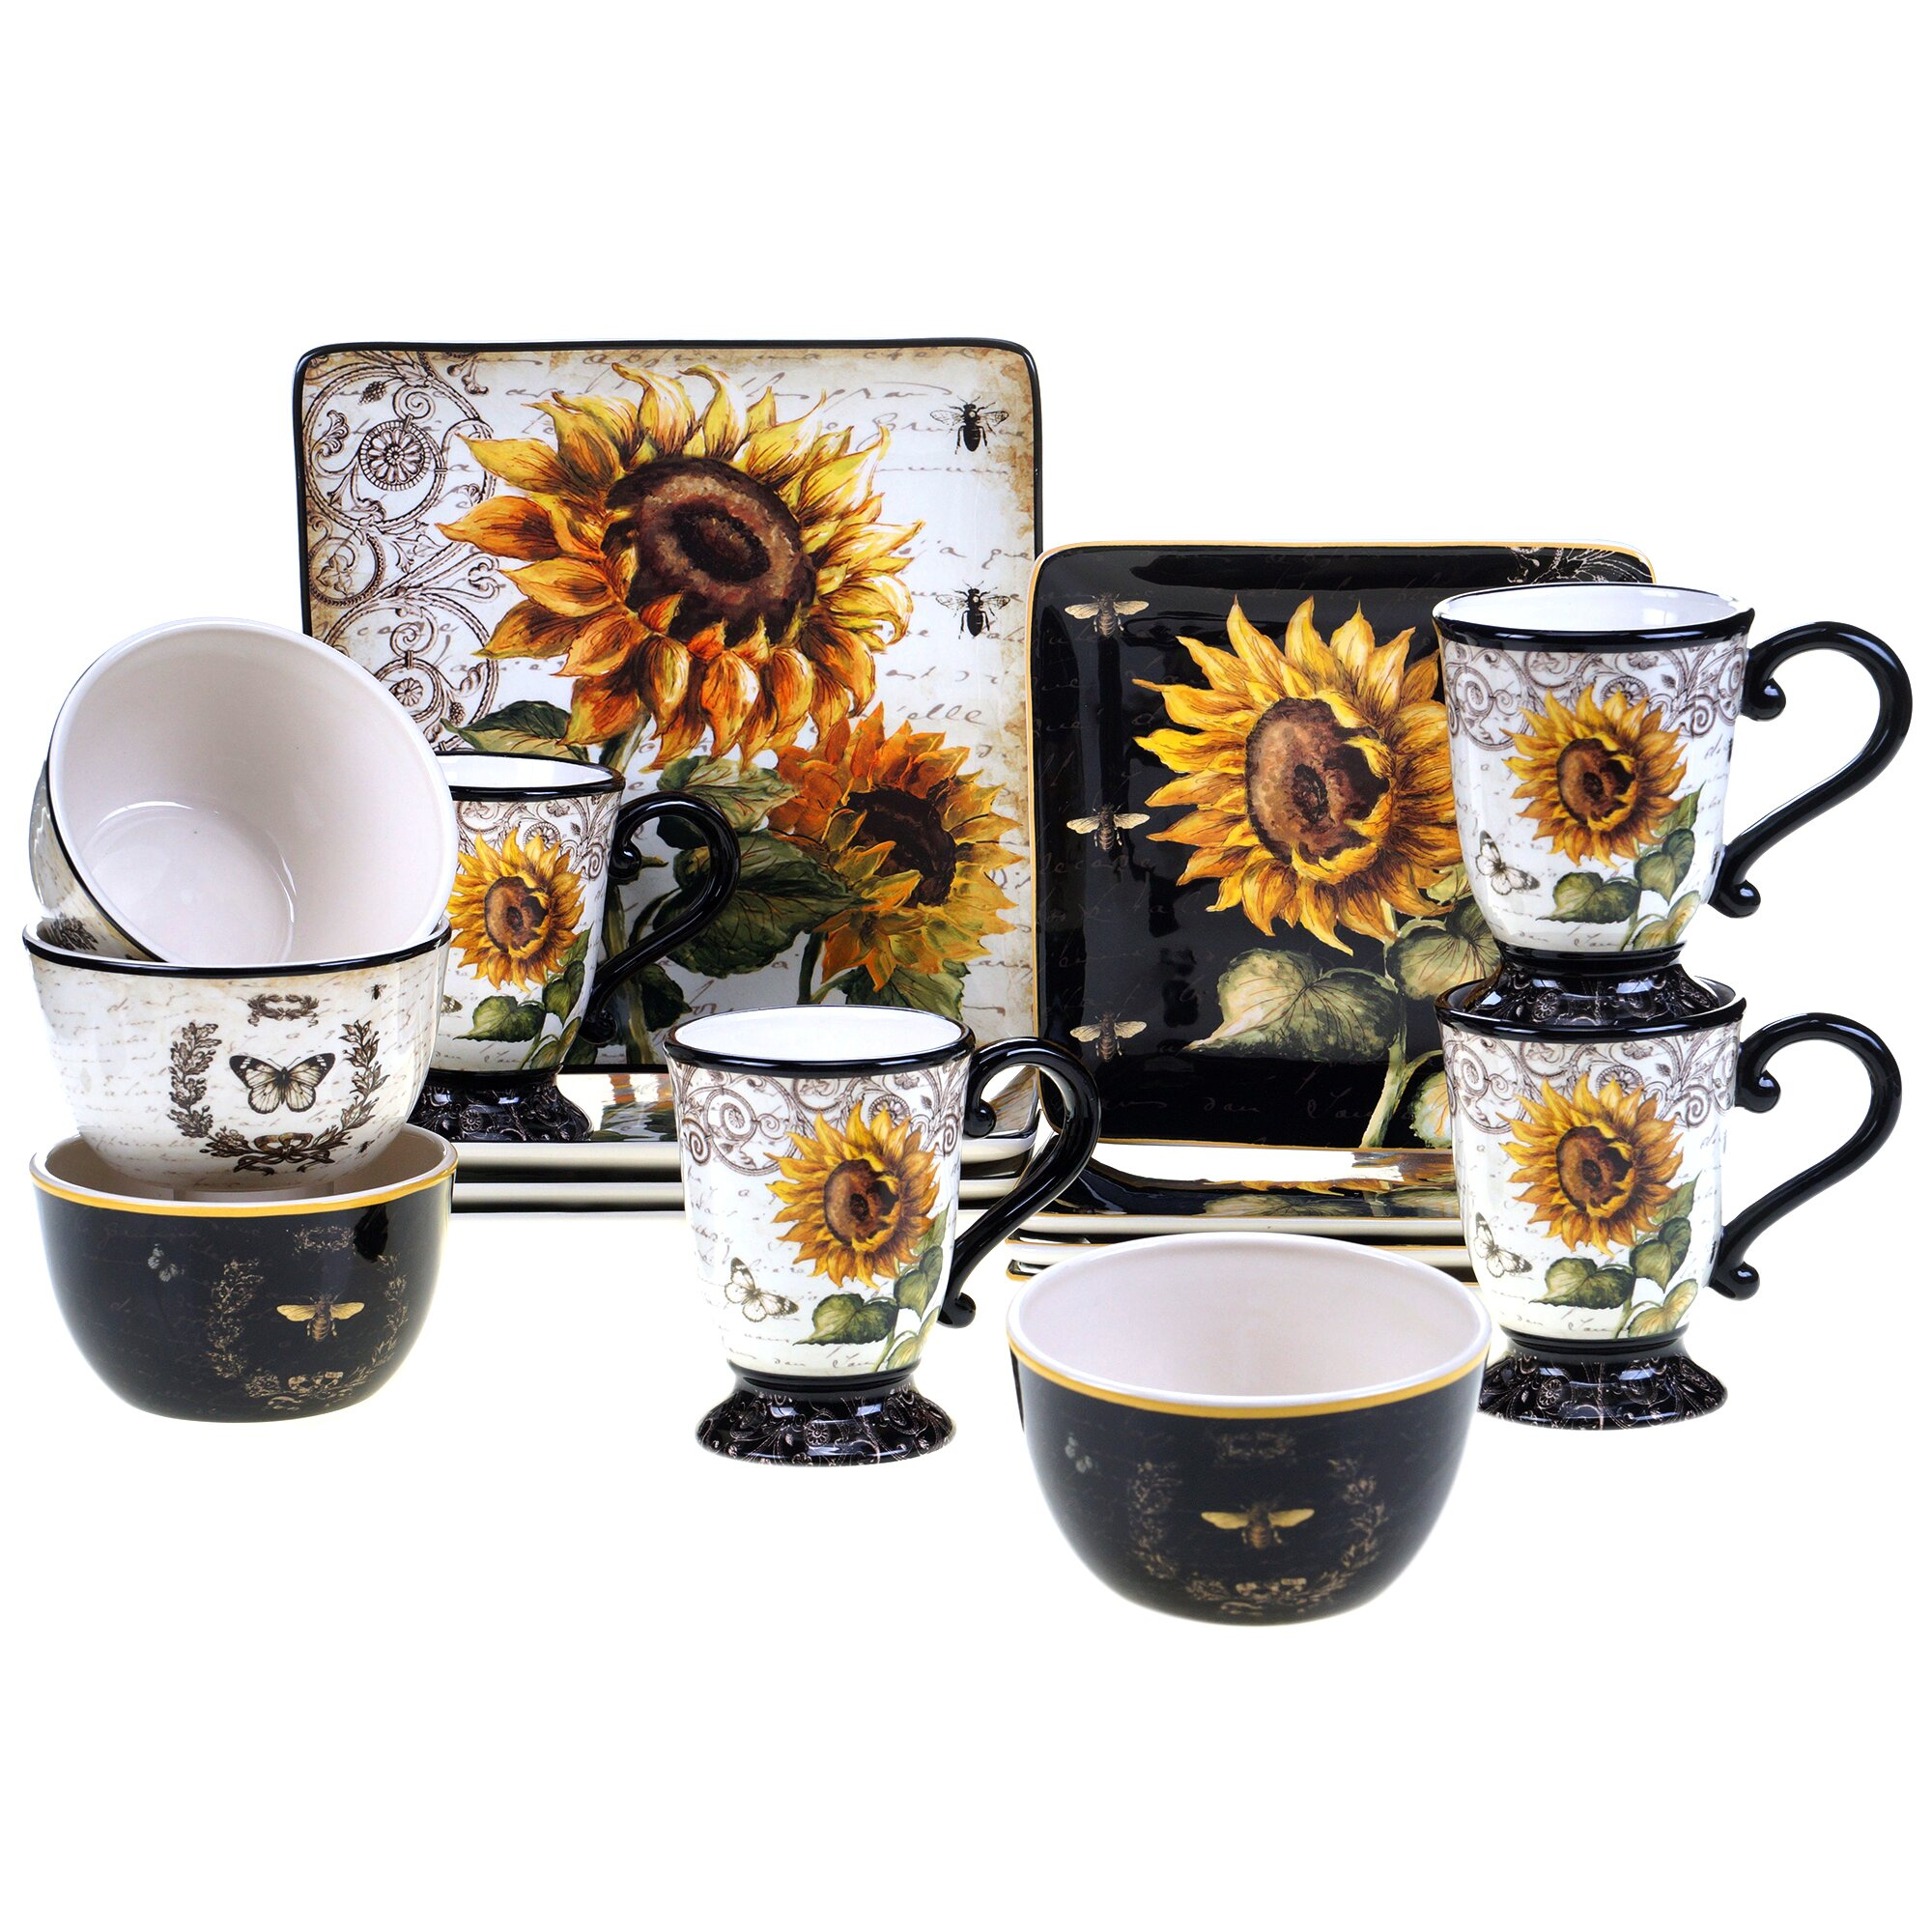 Certified international french sunflower 16 piece dinnerware set amp reviews wayfair ca